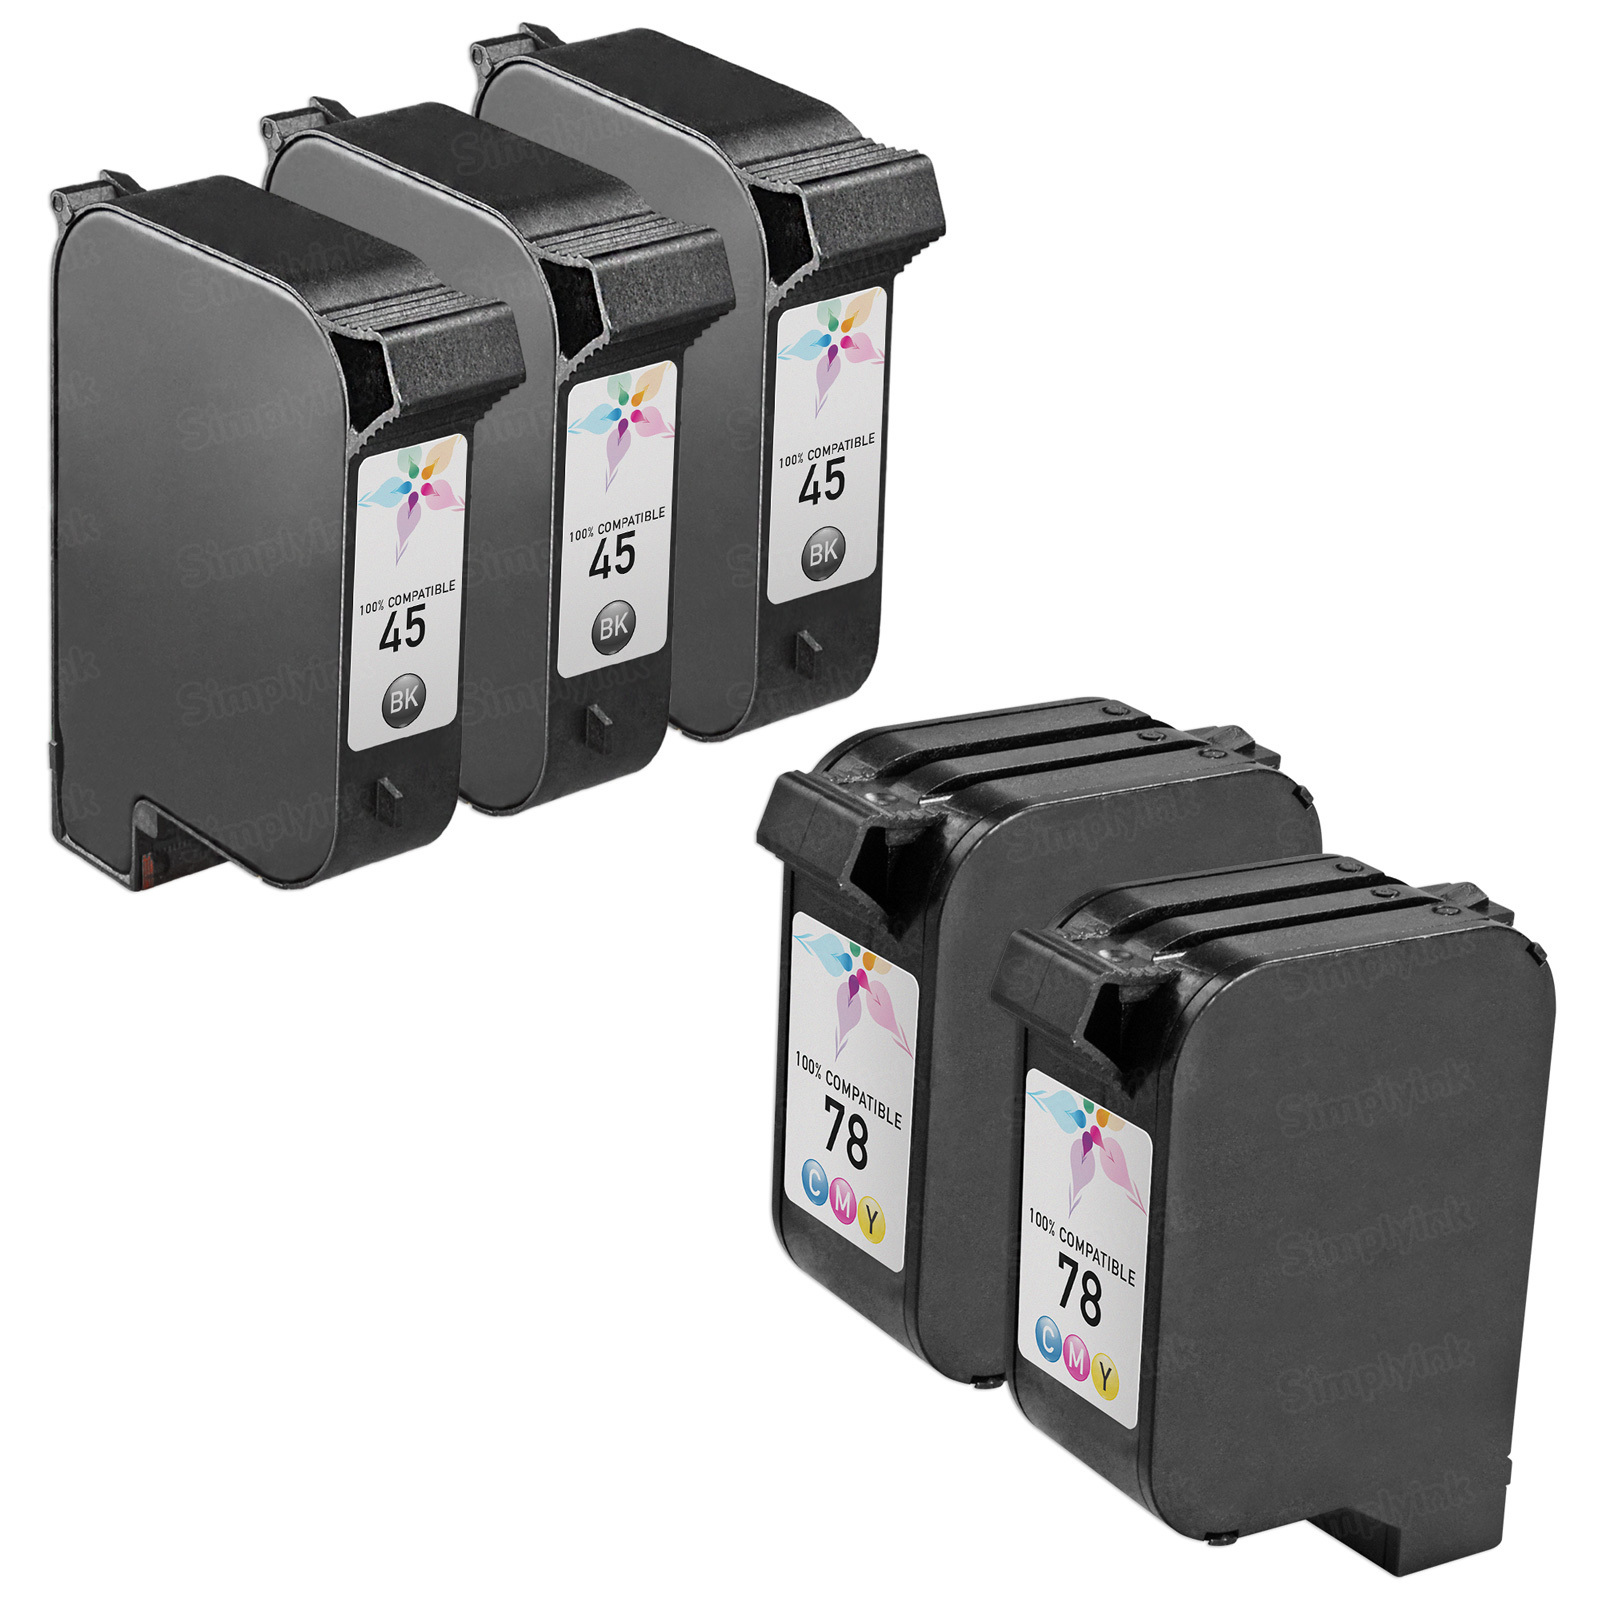 Remanufactured Bulk Set of 5 Ink Cartridges to Replace HP 45 & HP 78 (3 BK, 2 CLR)